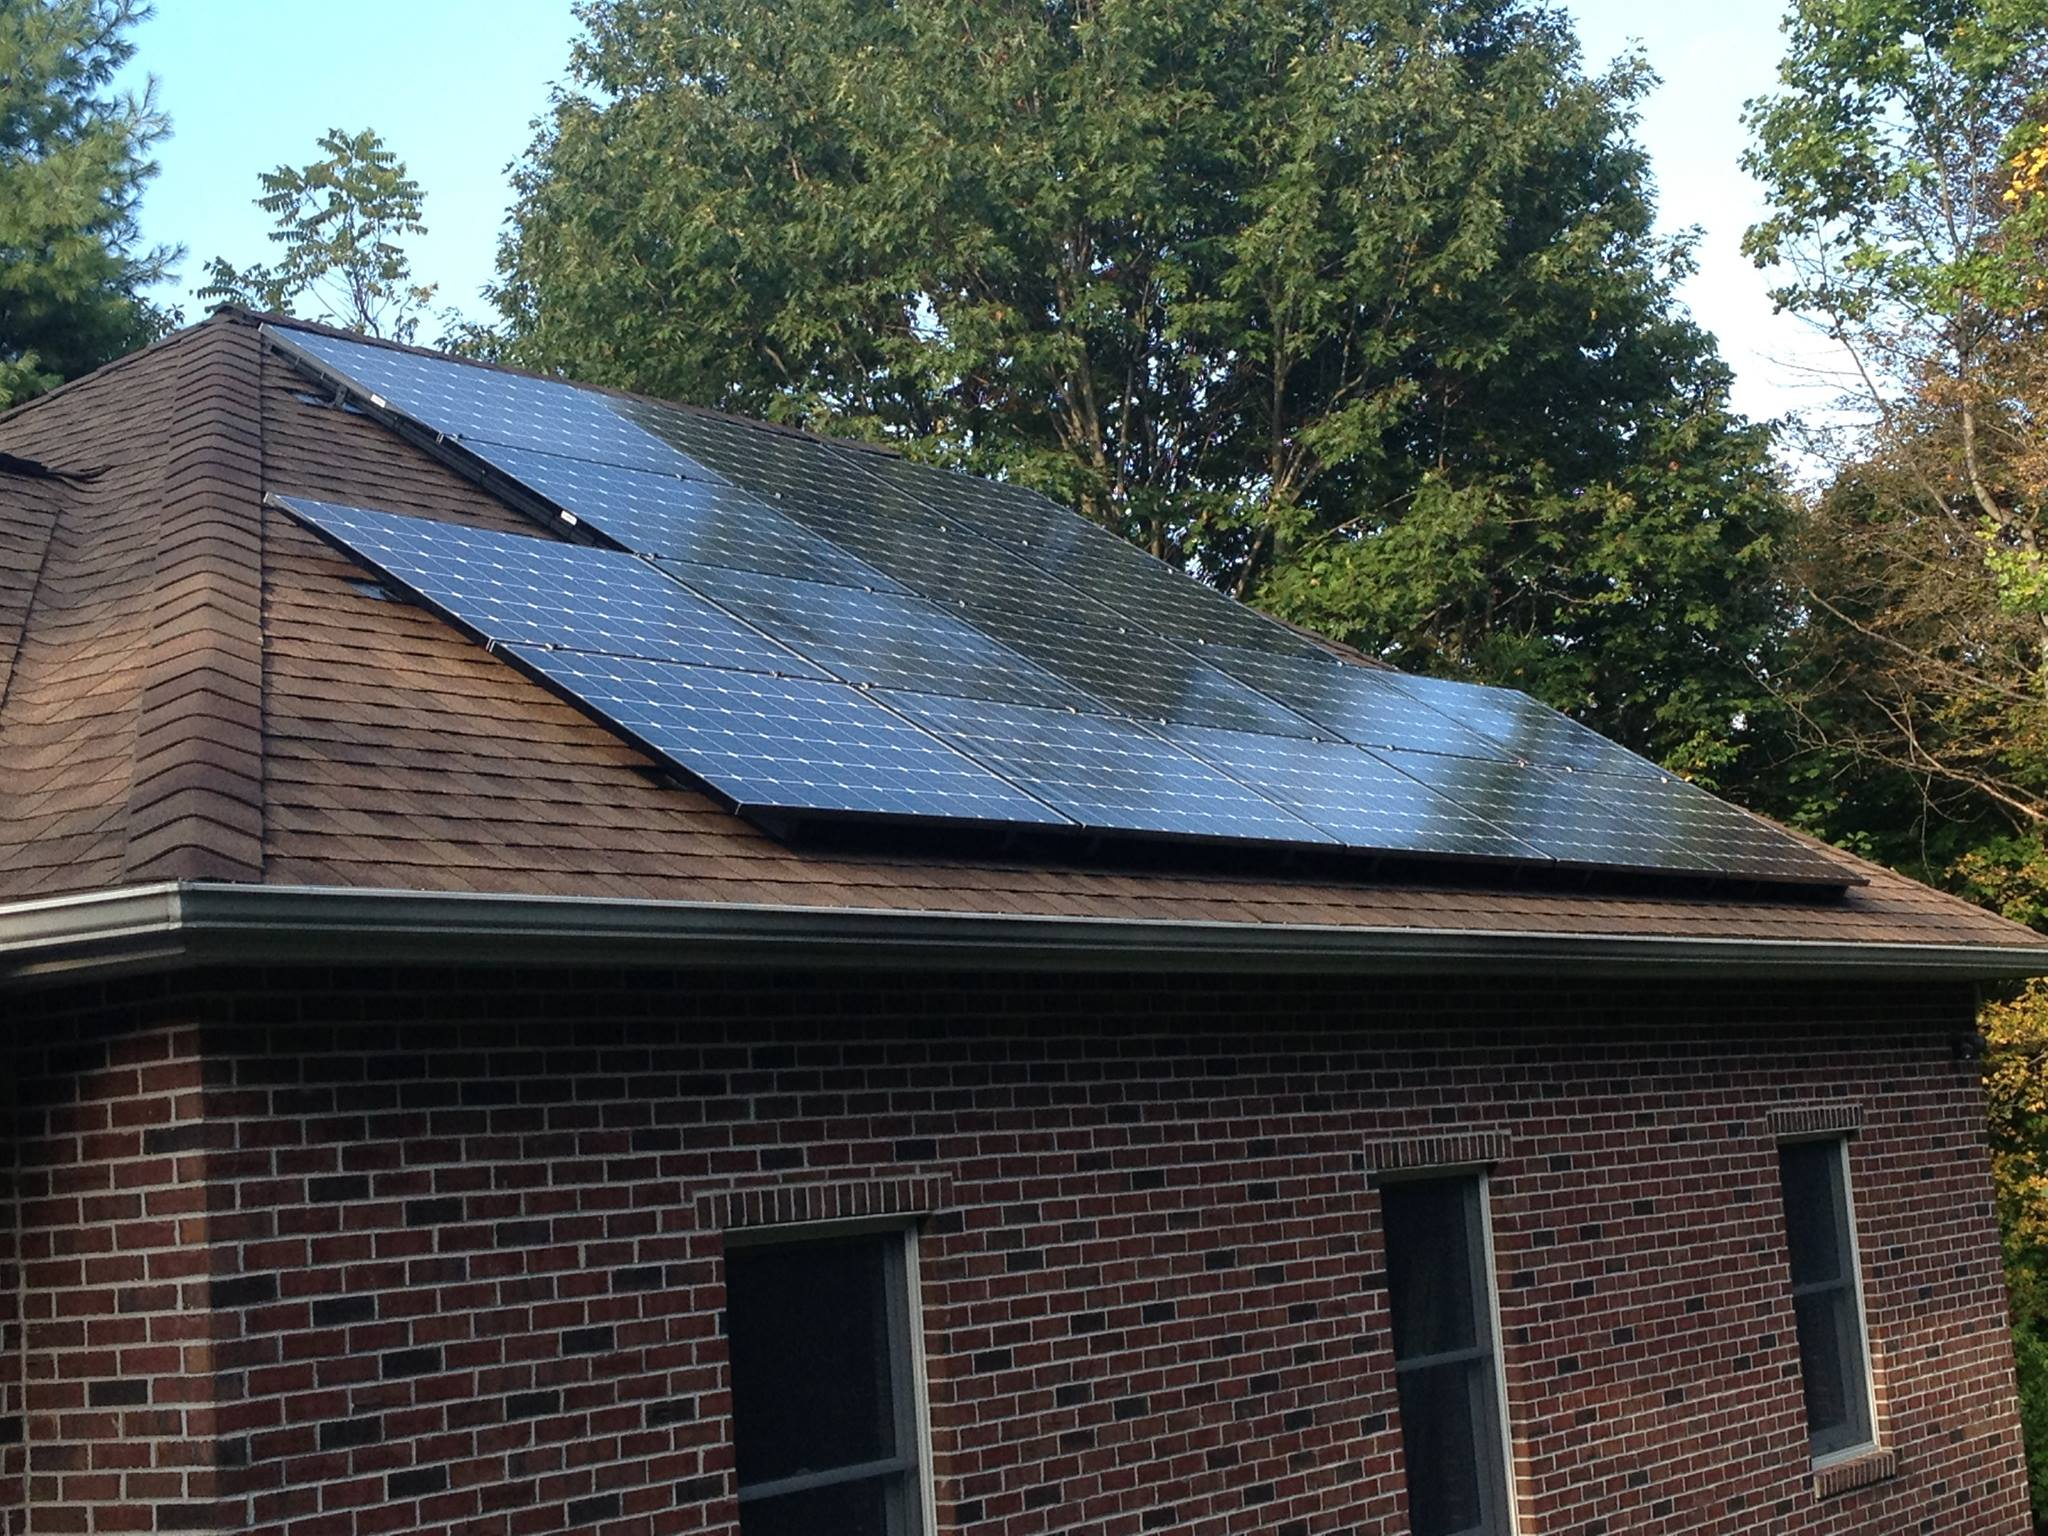 4 KW PV SYSTEM (ROOF MOUNT)